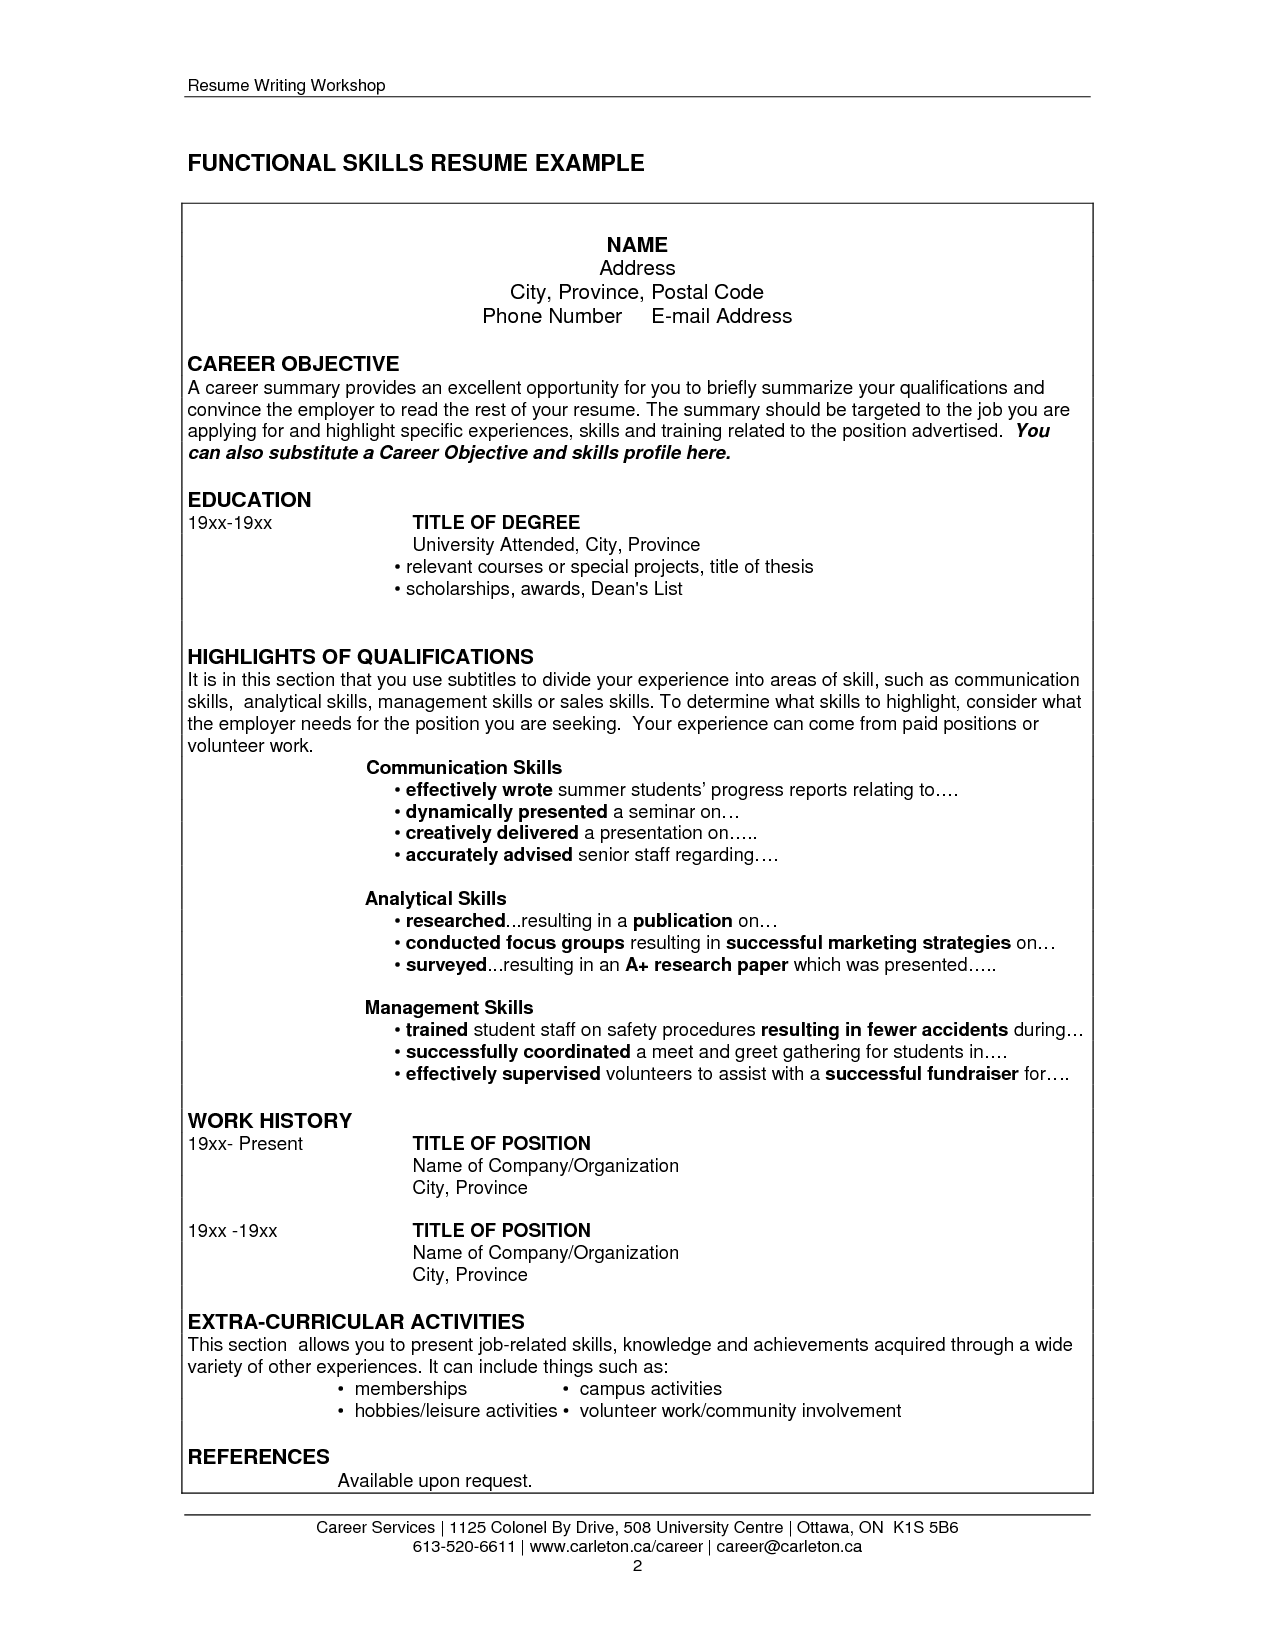 Skills And Abilities For Resume Image Result For Skills Resume Format  Business  Pinterest